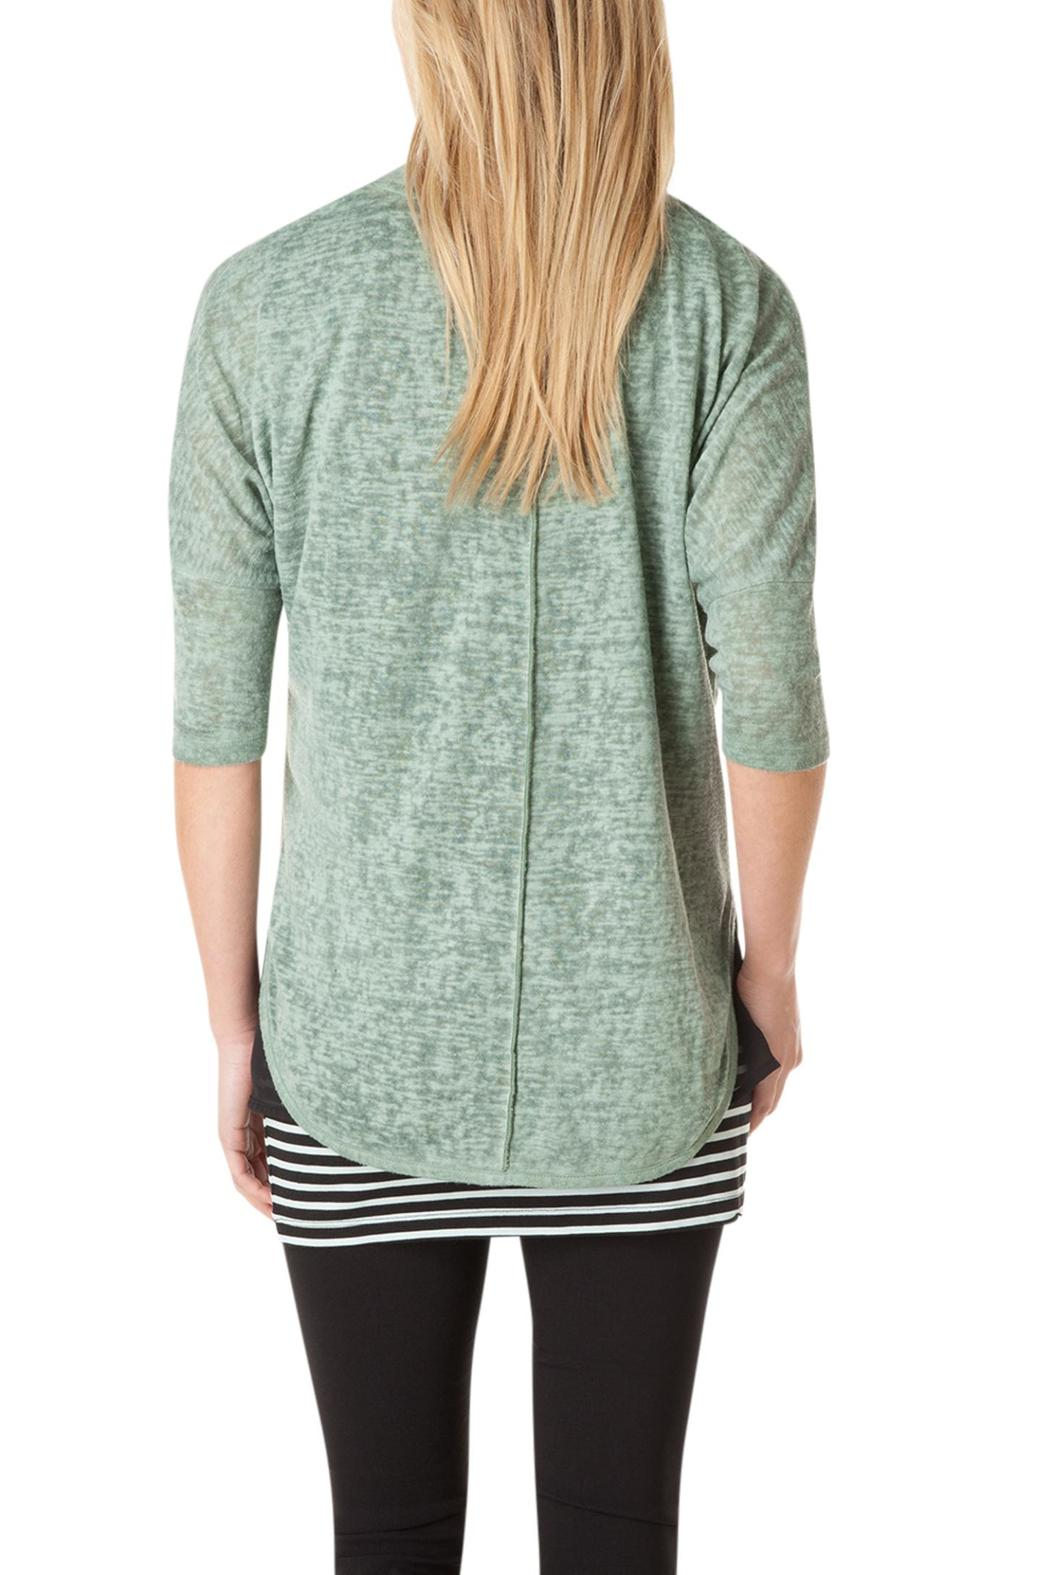 Yest Green Crop Cardigan - Front Full Image